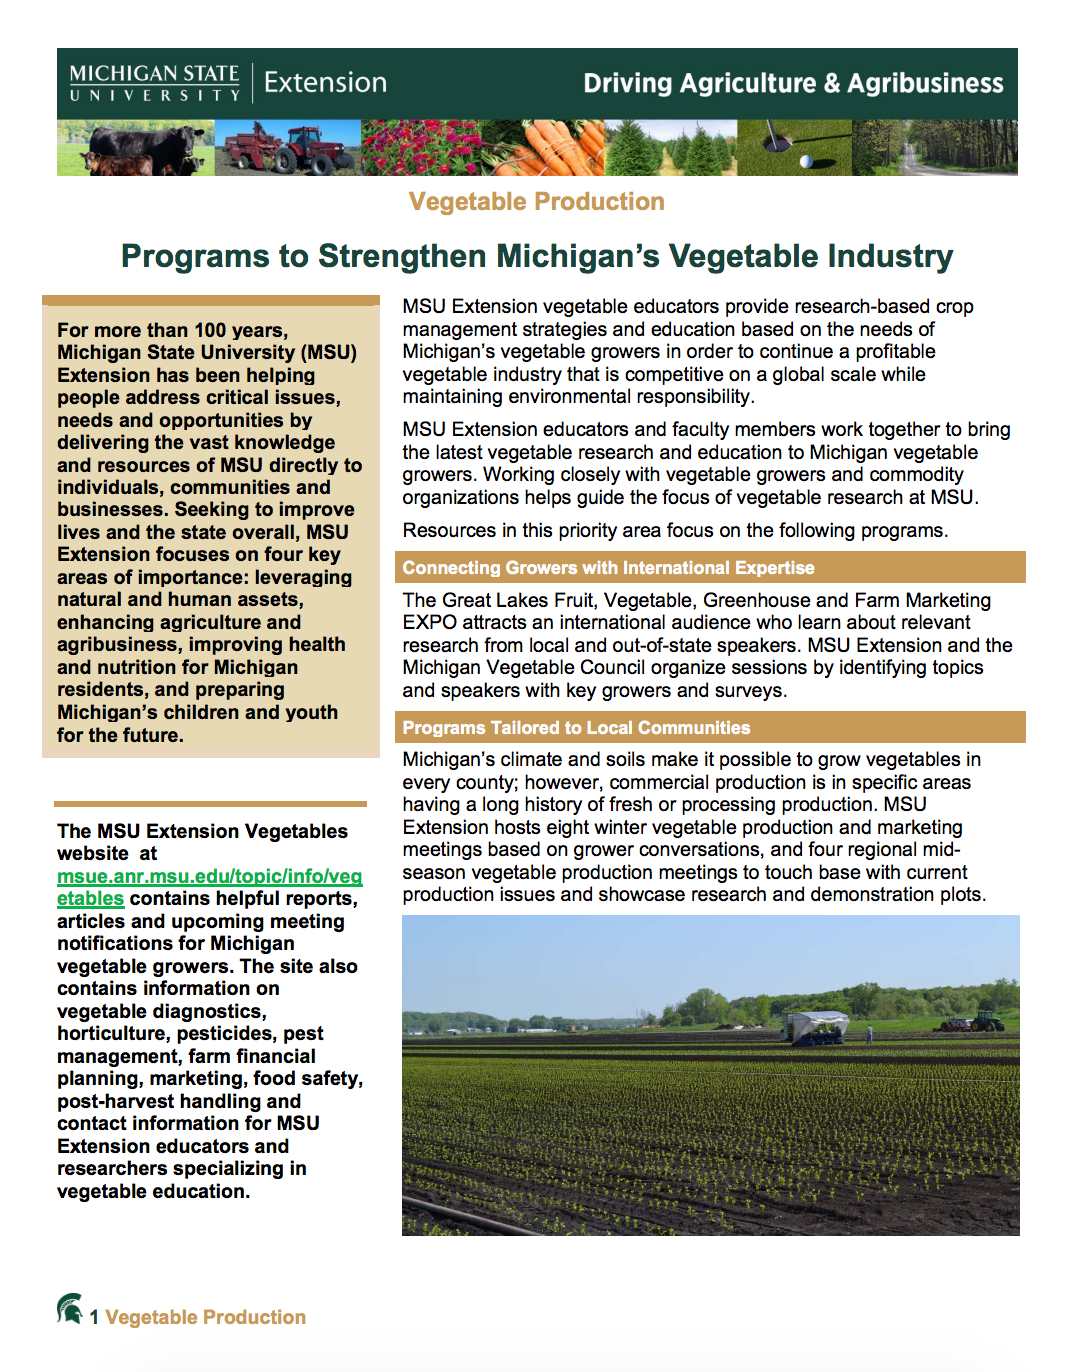 Programs to Strengthen Michigan's Vegetable Industry